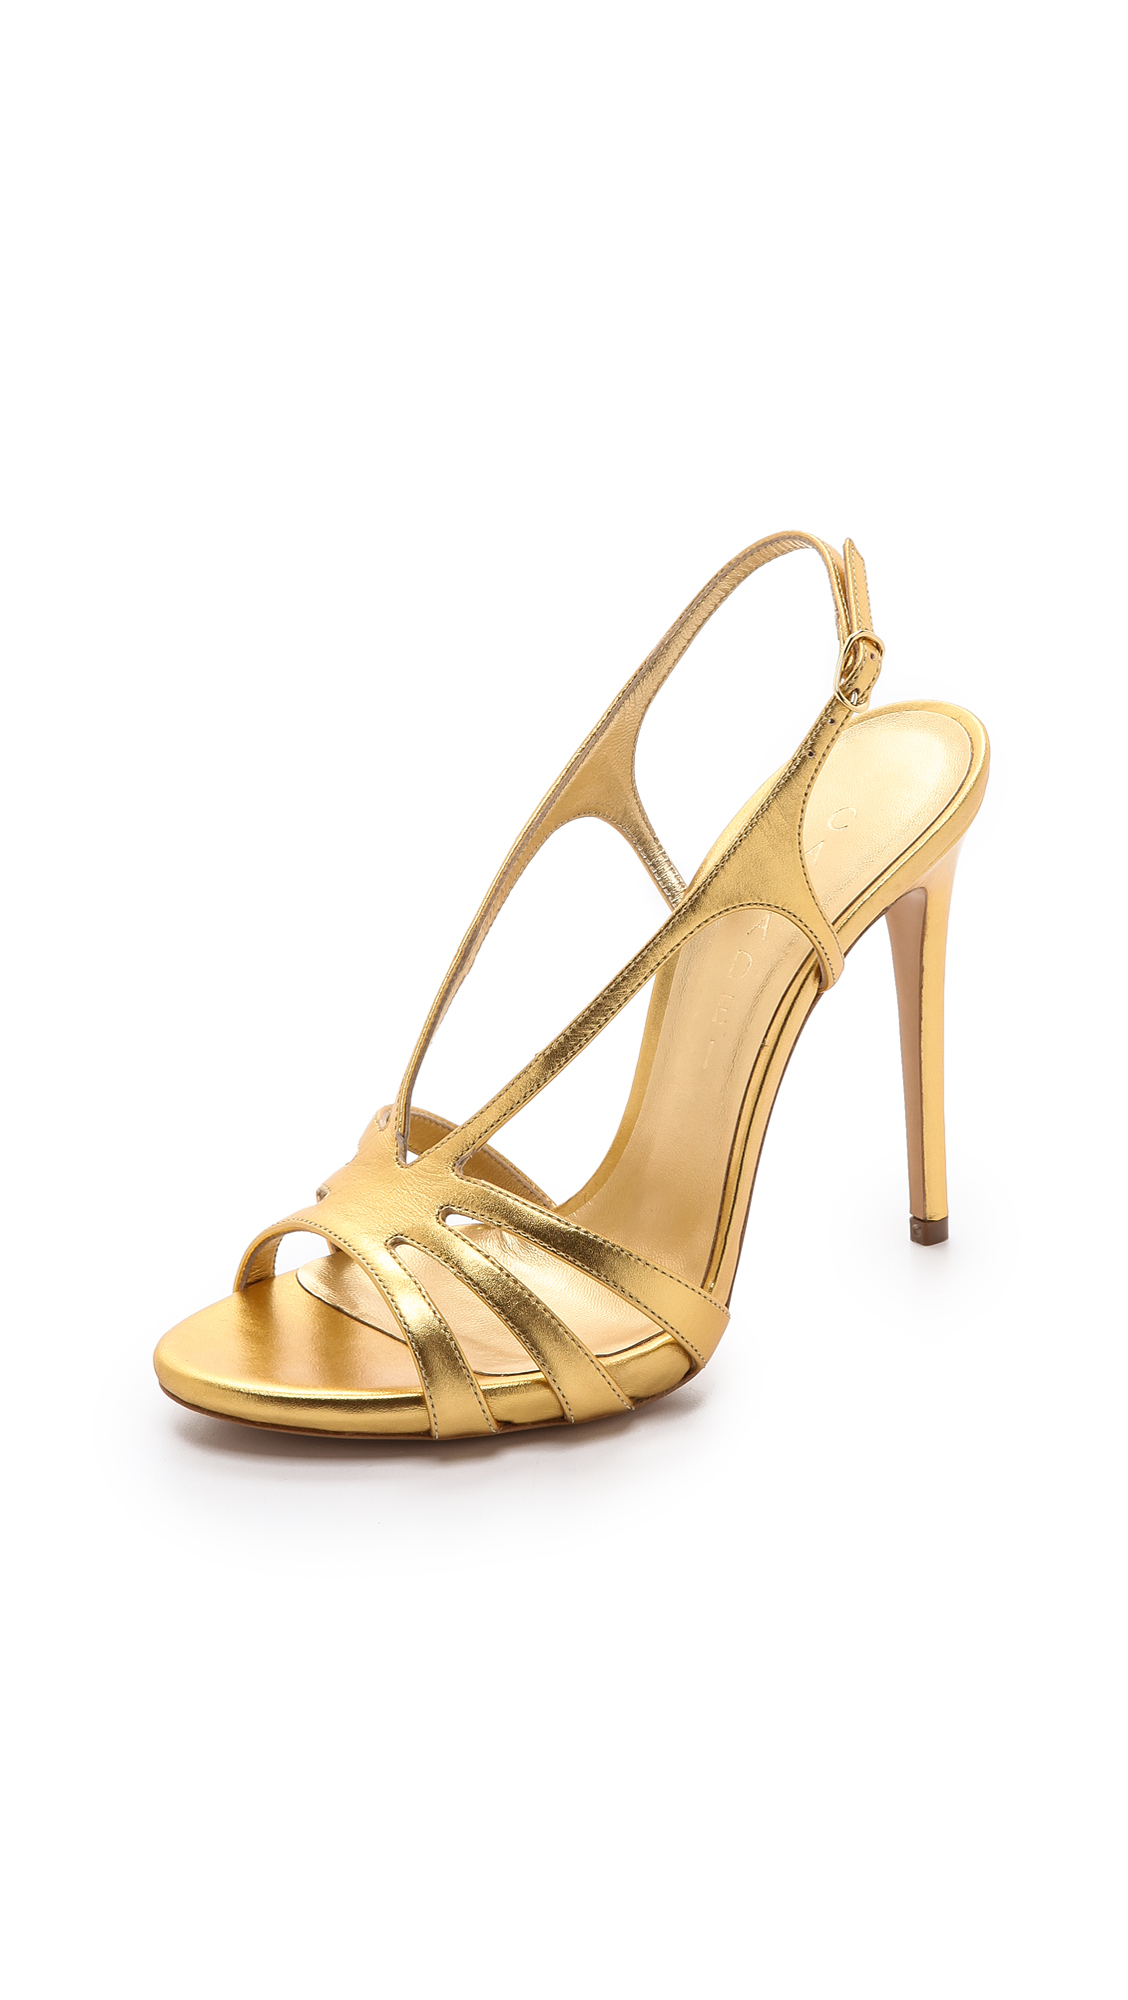 7862424eb712 casadei-gold-strappy-heeled-sandals-product-1-17779530-2-817208451-normal.jpeg